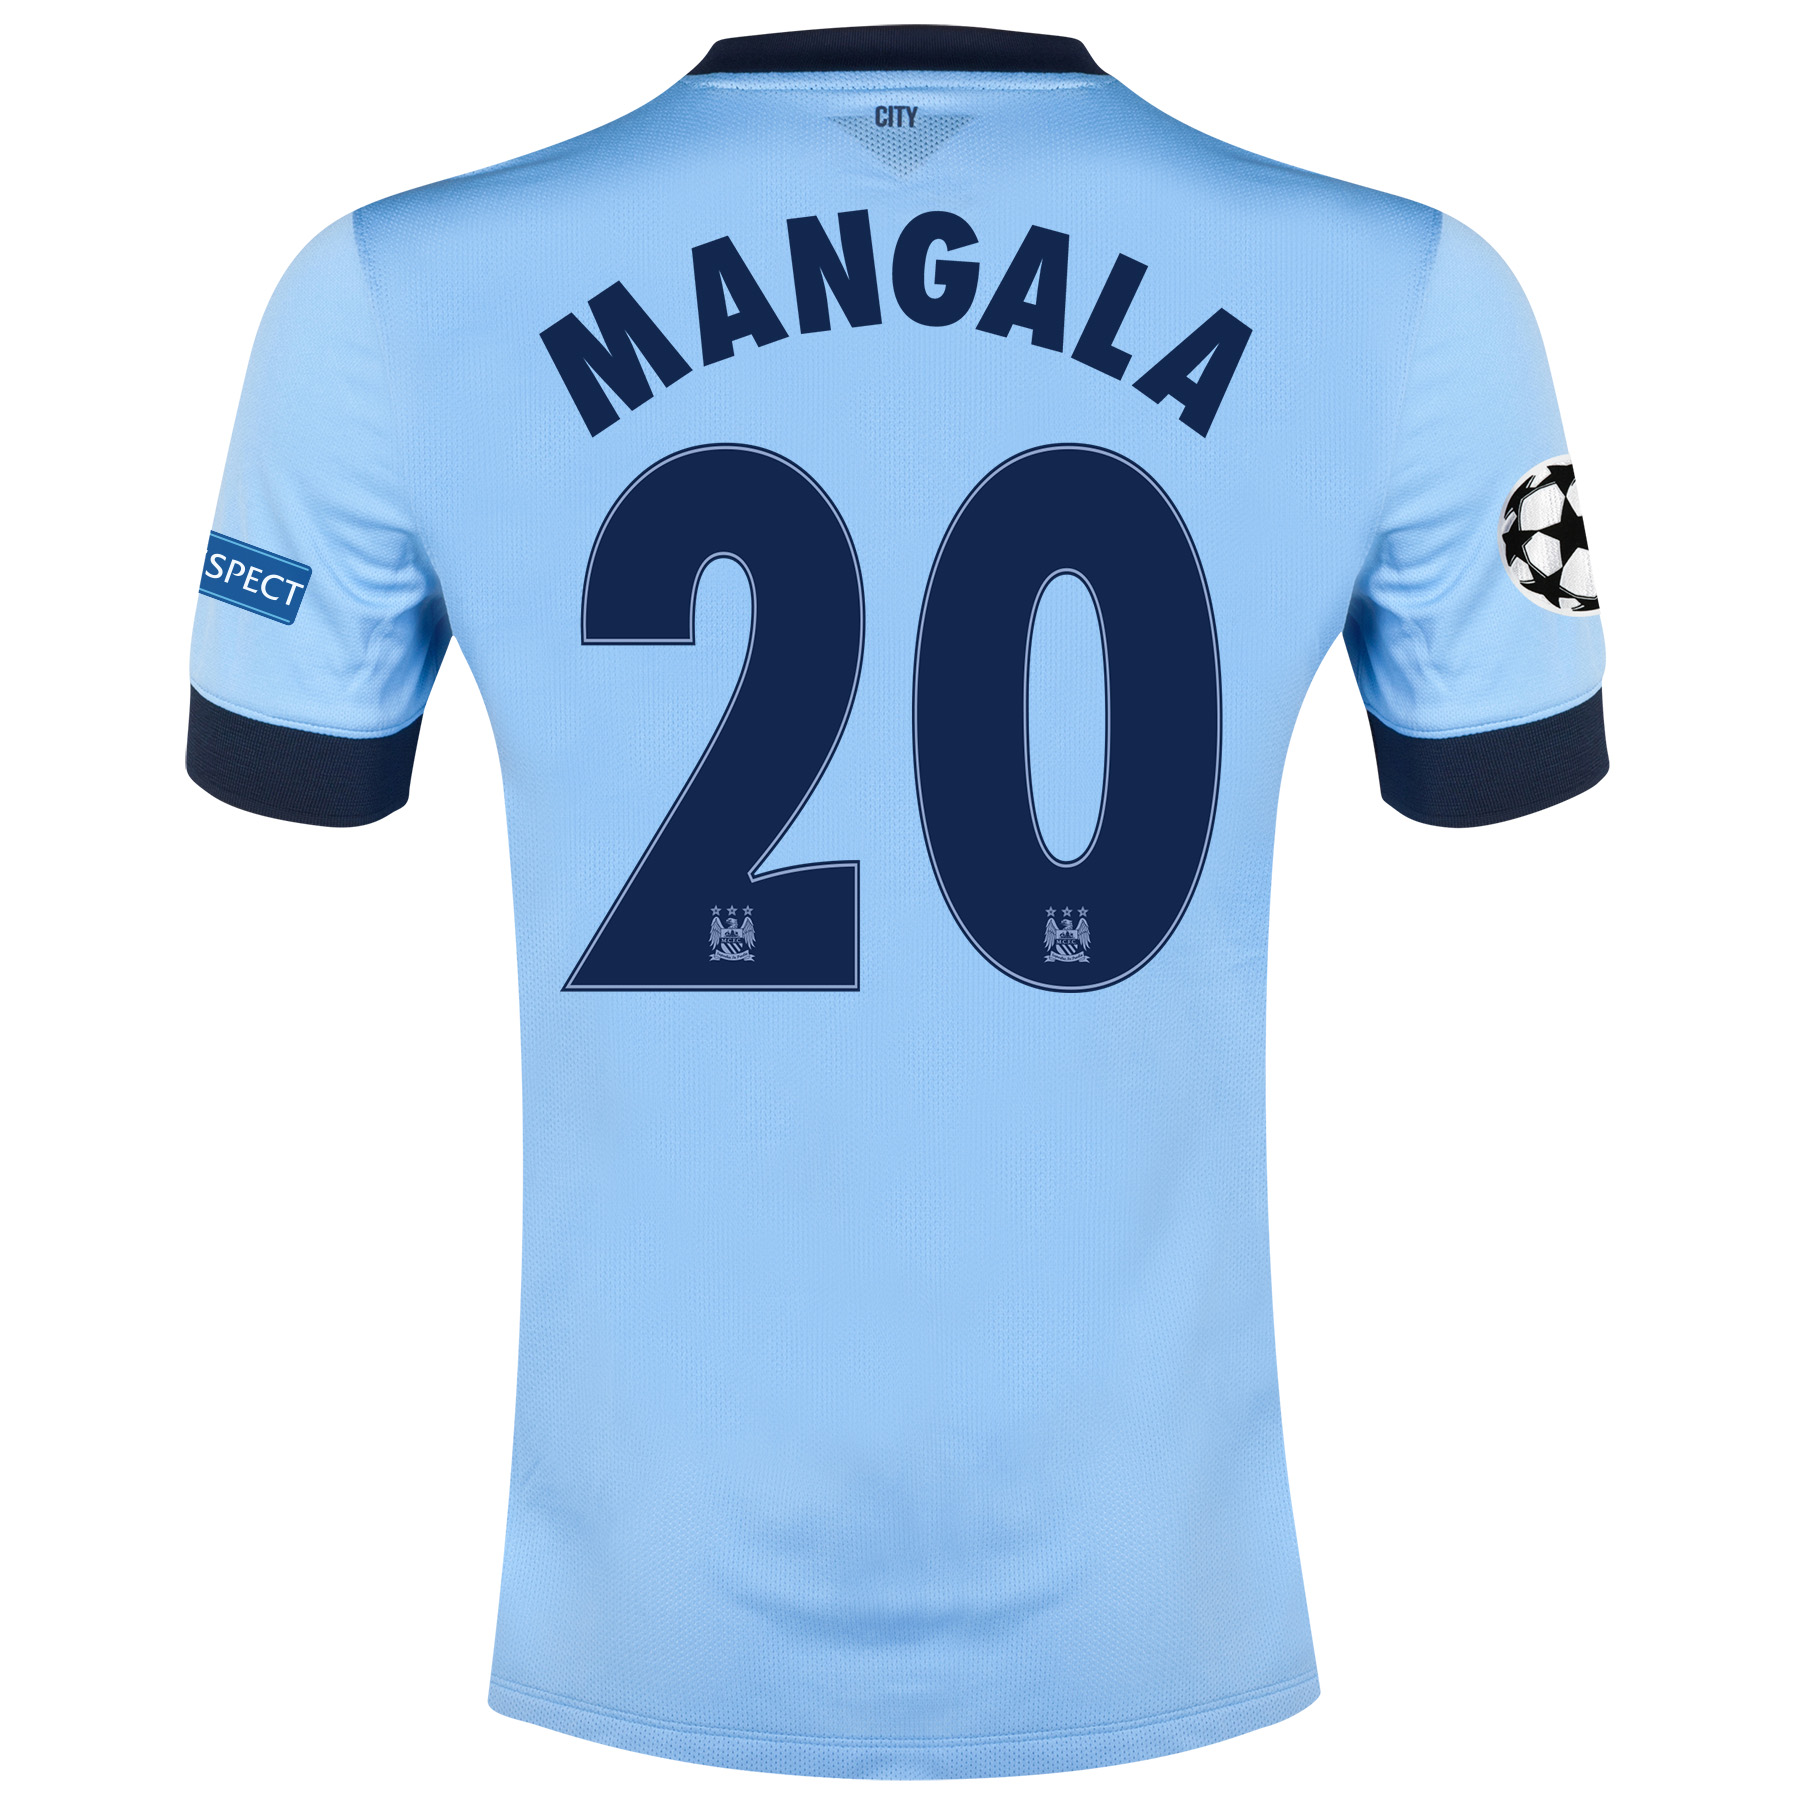 Manchester City UEFA Champions League Home Shirt 2014/15 - Kids Sky Blue with Mangala 20 printing